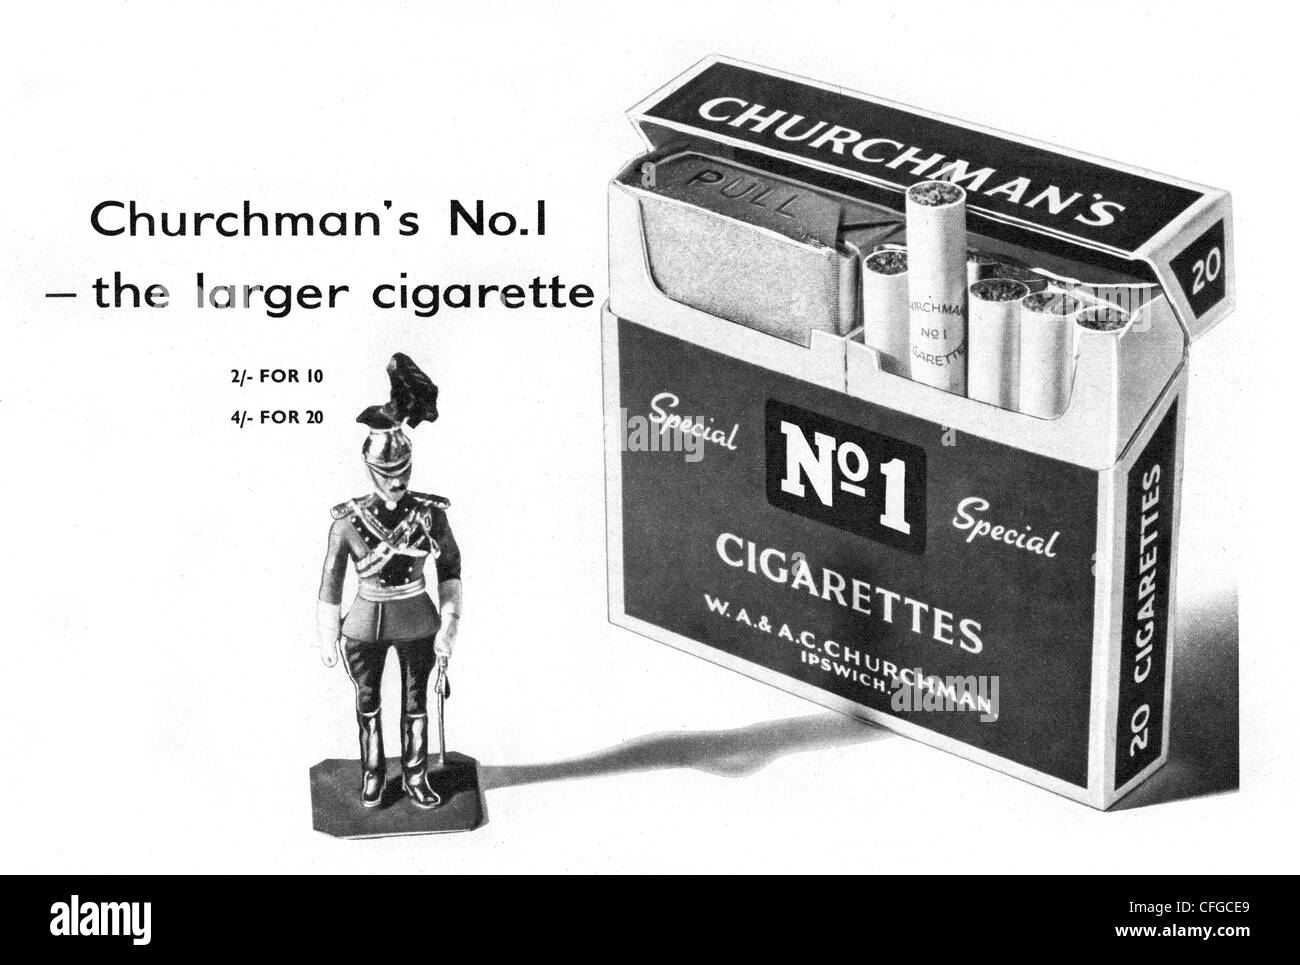 Churchmans No1 Special cigarettes advert from 1957 - Stock Image